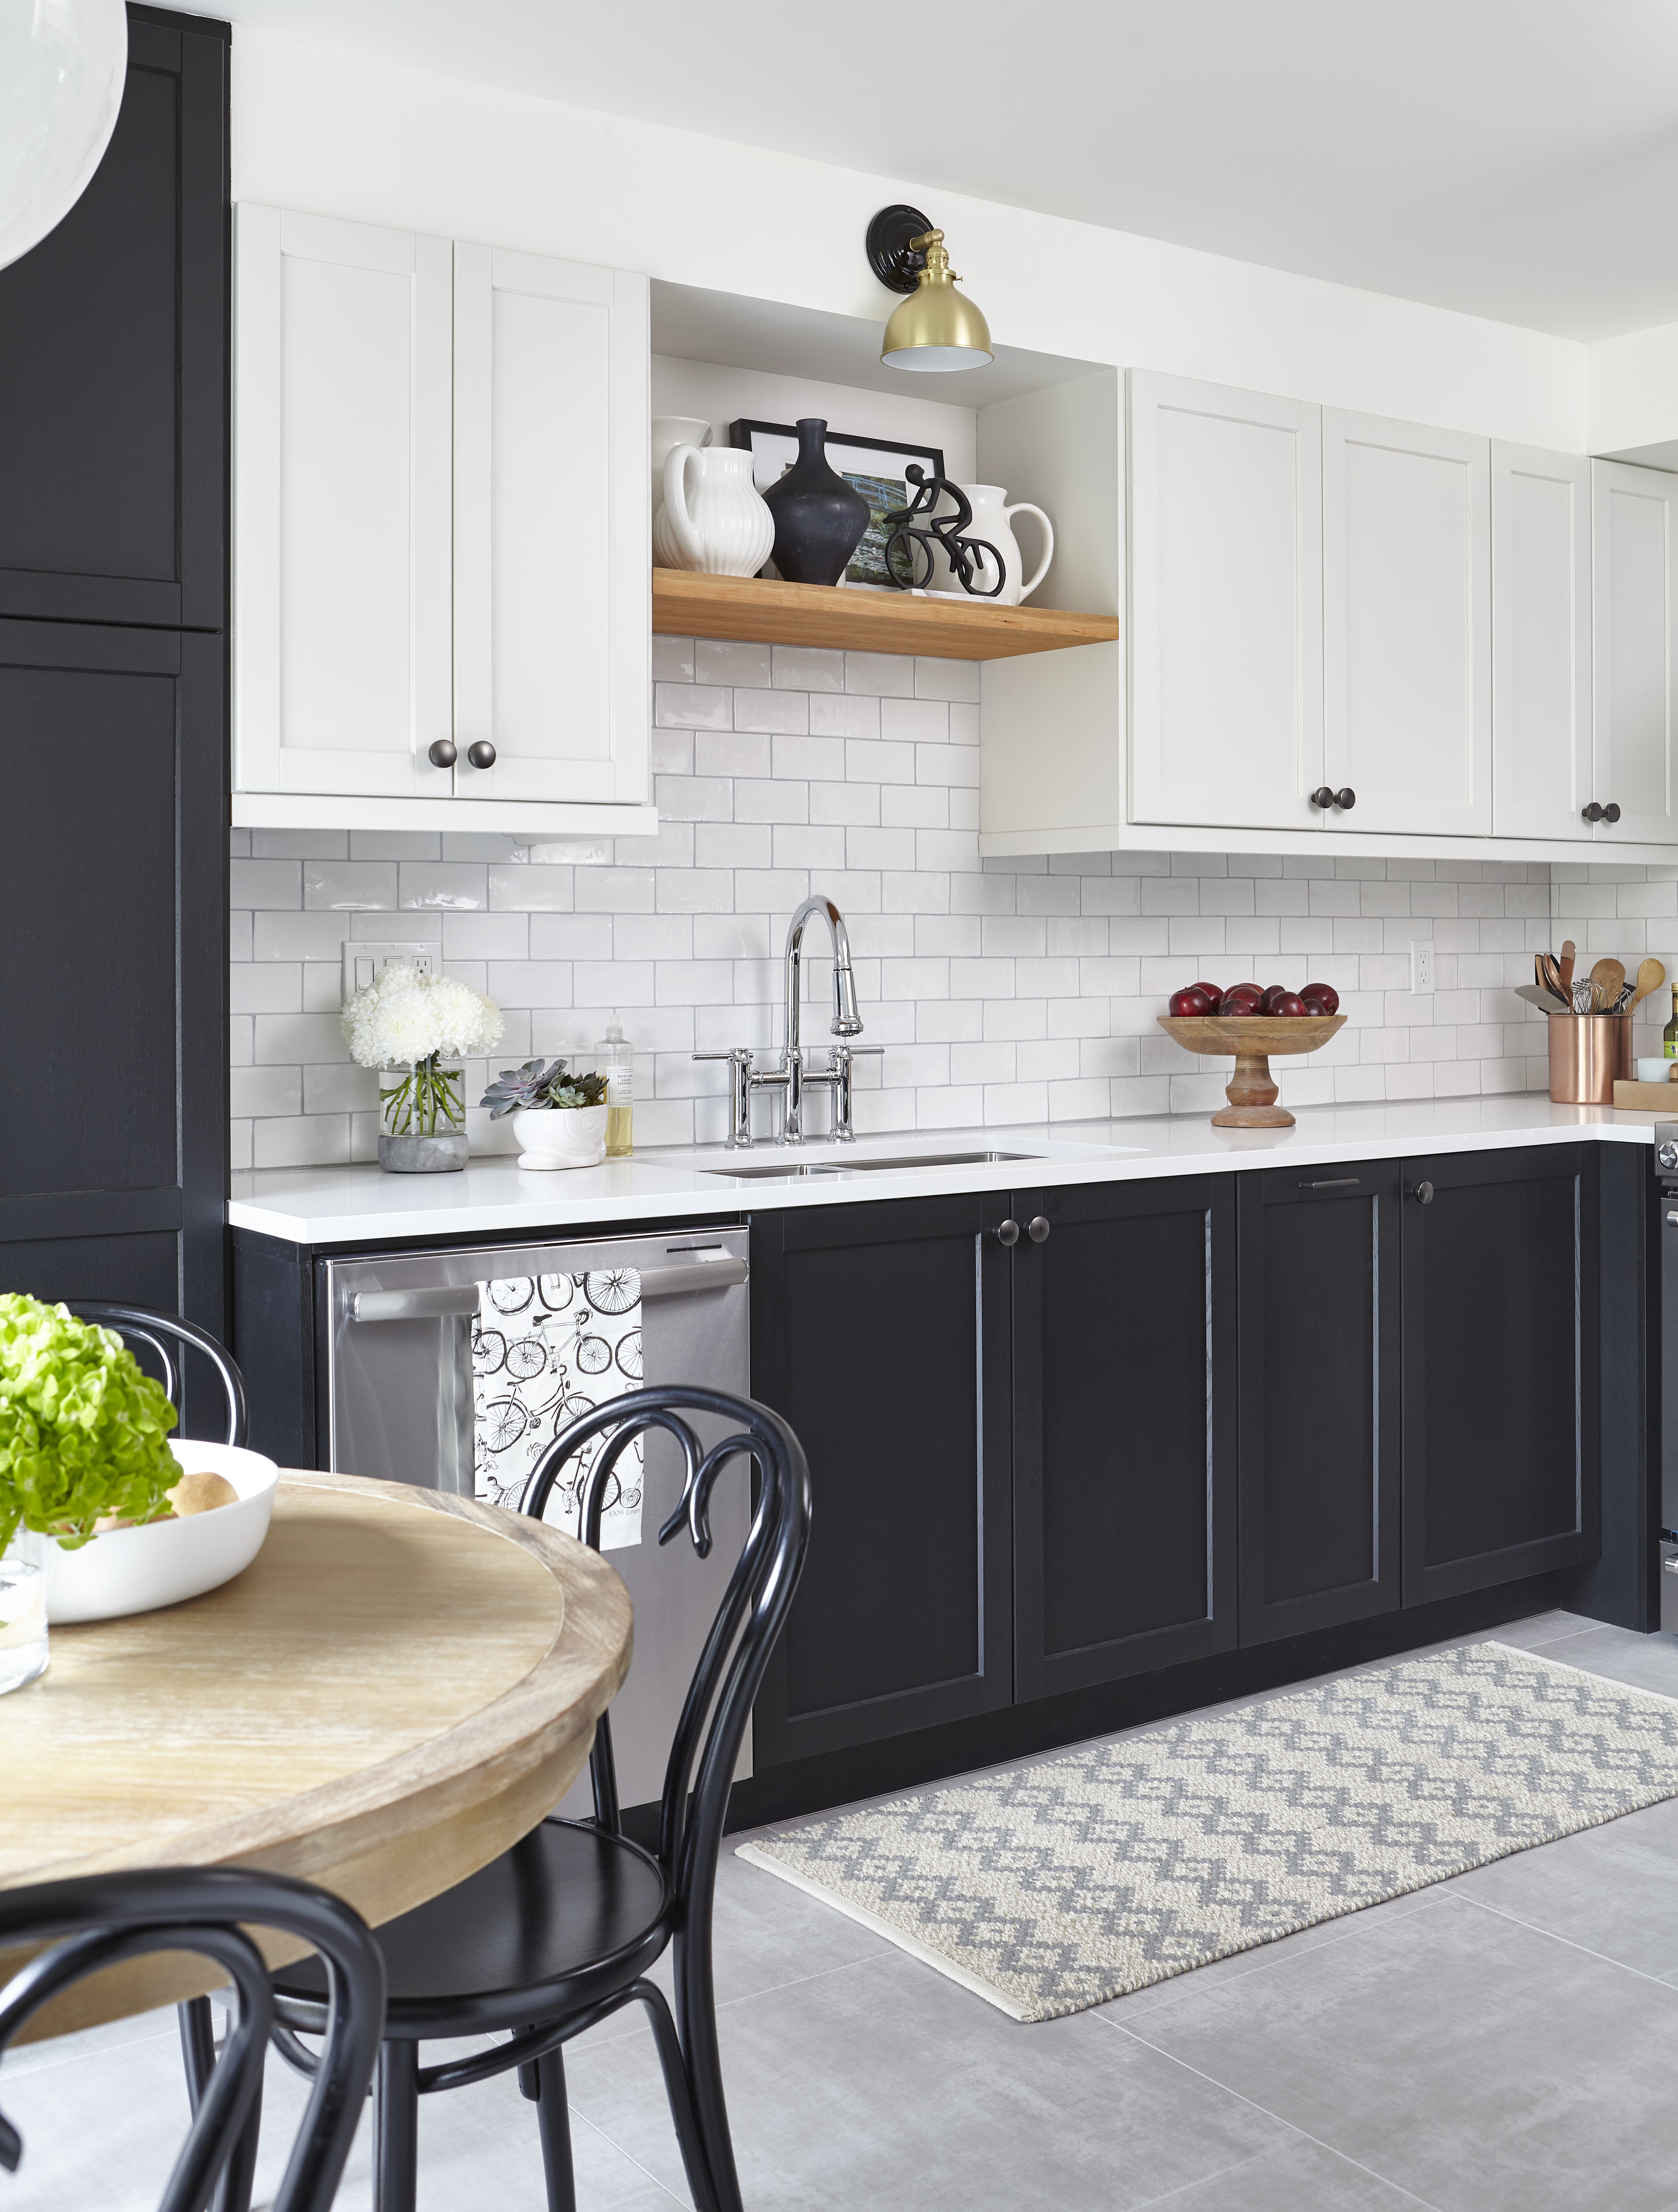 The Ombra Range Hood From Zephyr Adds So Much To Kitchen And Black Stainless Steel Finish Is Perfect I Now Think Every Needs A